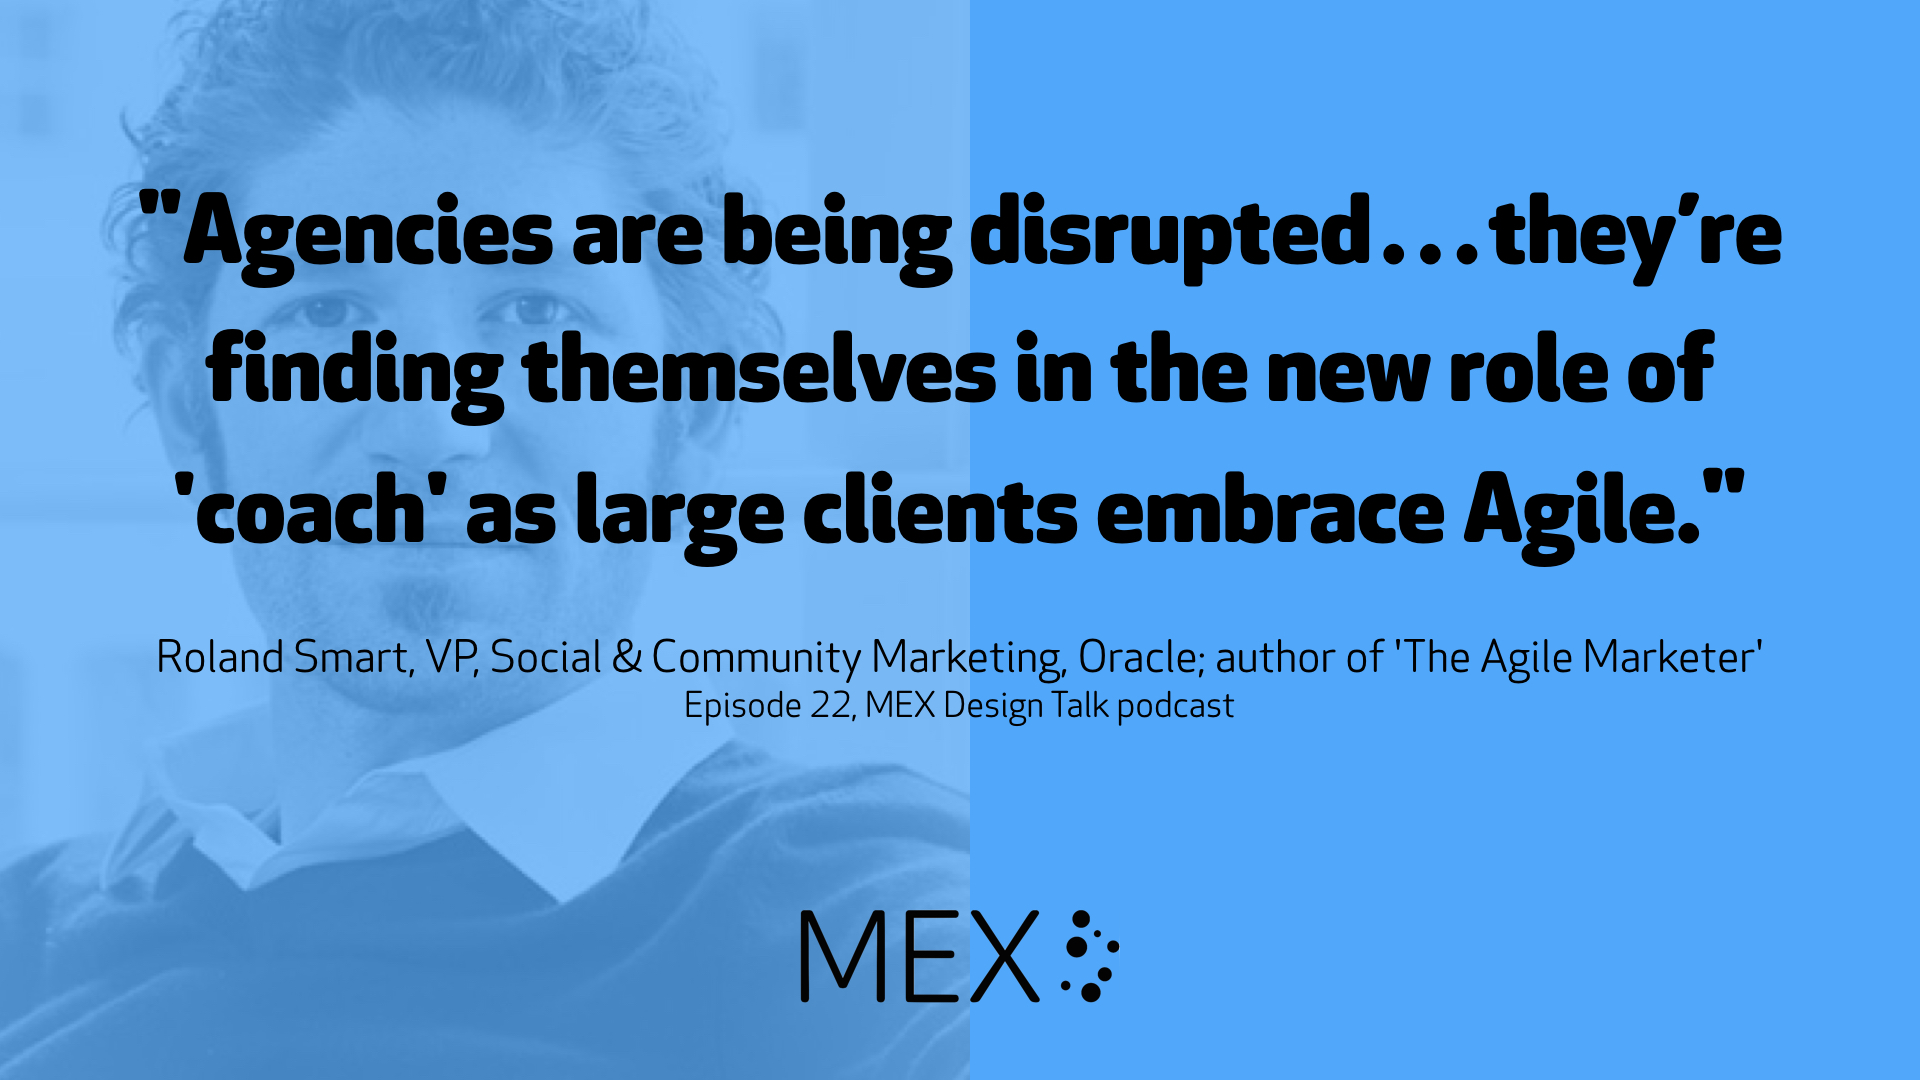 """Agencies are being disrupted…they're finding themselves in the new role of 'coach' as large clients embrace Agile."" -- Roland Smart, VP, Social & Community Marketing, Oracle; author of 'The Agile Marketer' on Episode 22, MEX Design Talk podcast"